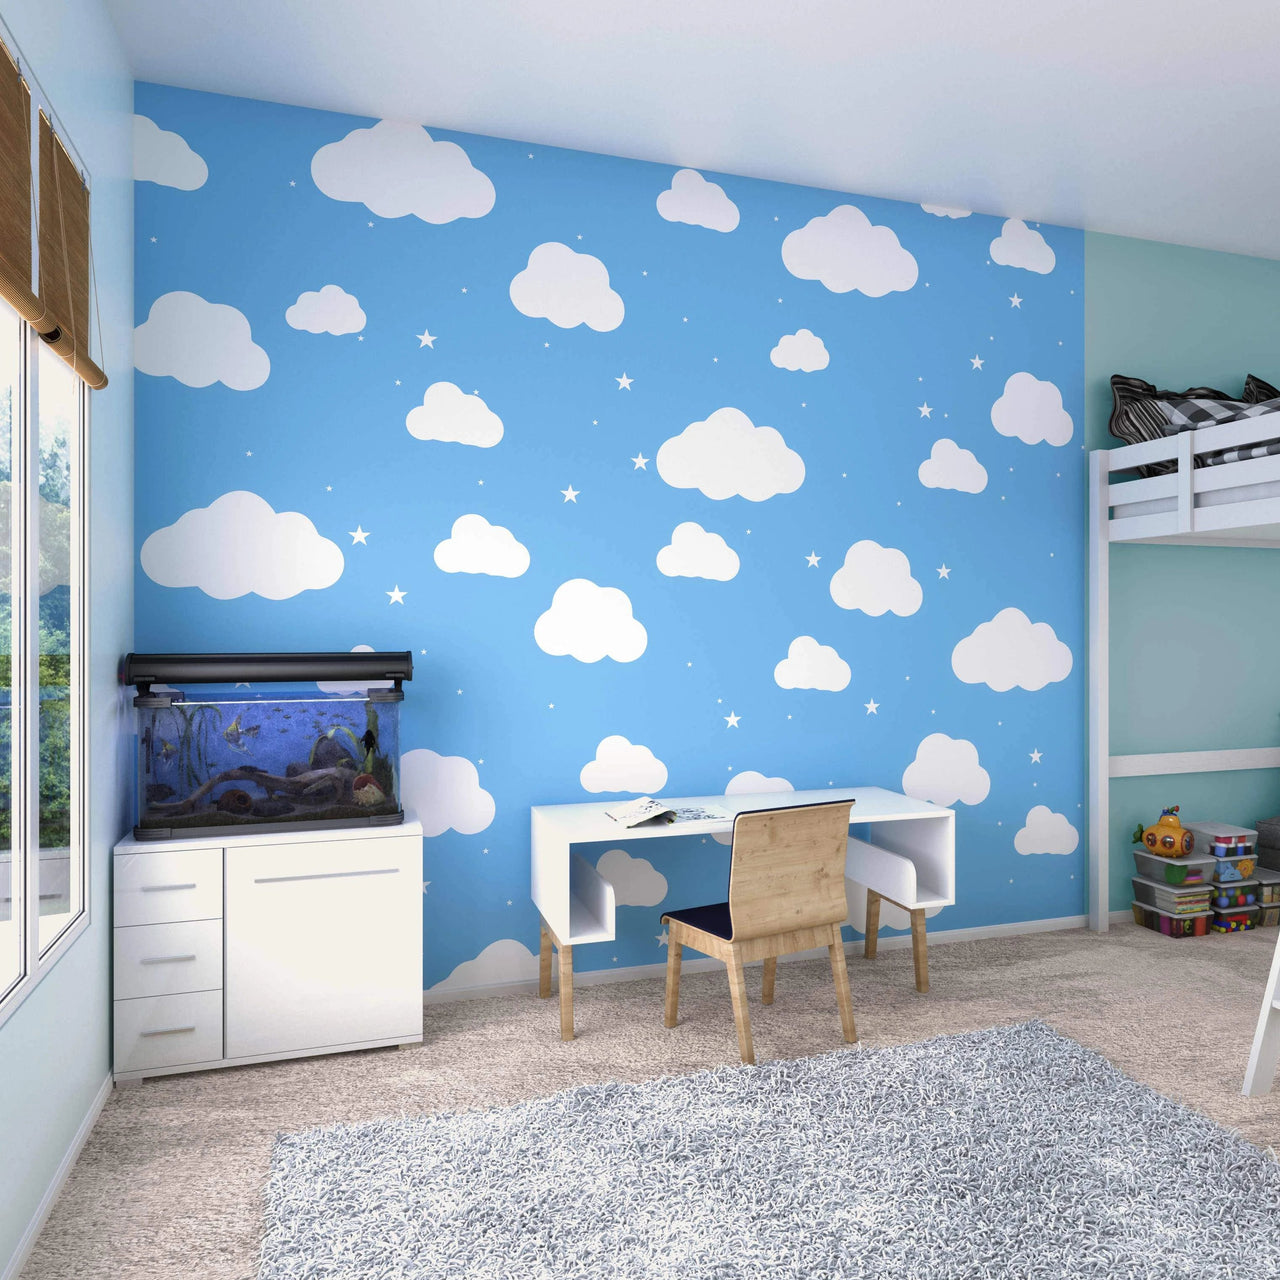 Who said a child's room can't be stylish? Our Cartoon Cloudy Sky Wall Mural is a playful yet super modern design featuring white clouds gently floating on a toned blue background. The minimal nature of this design means it can be matched perfectly with any furniture for your little ones.